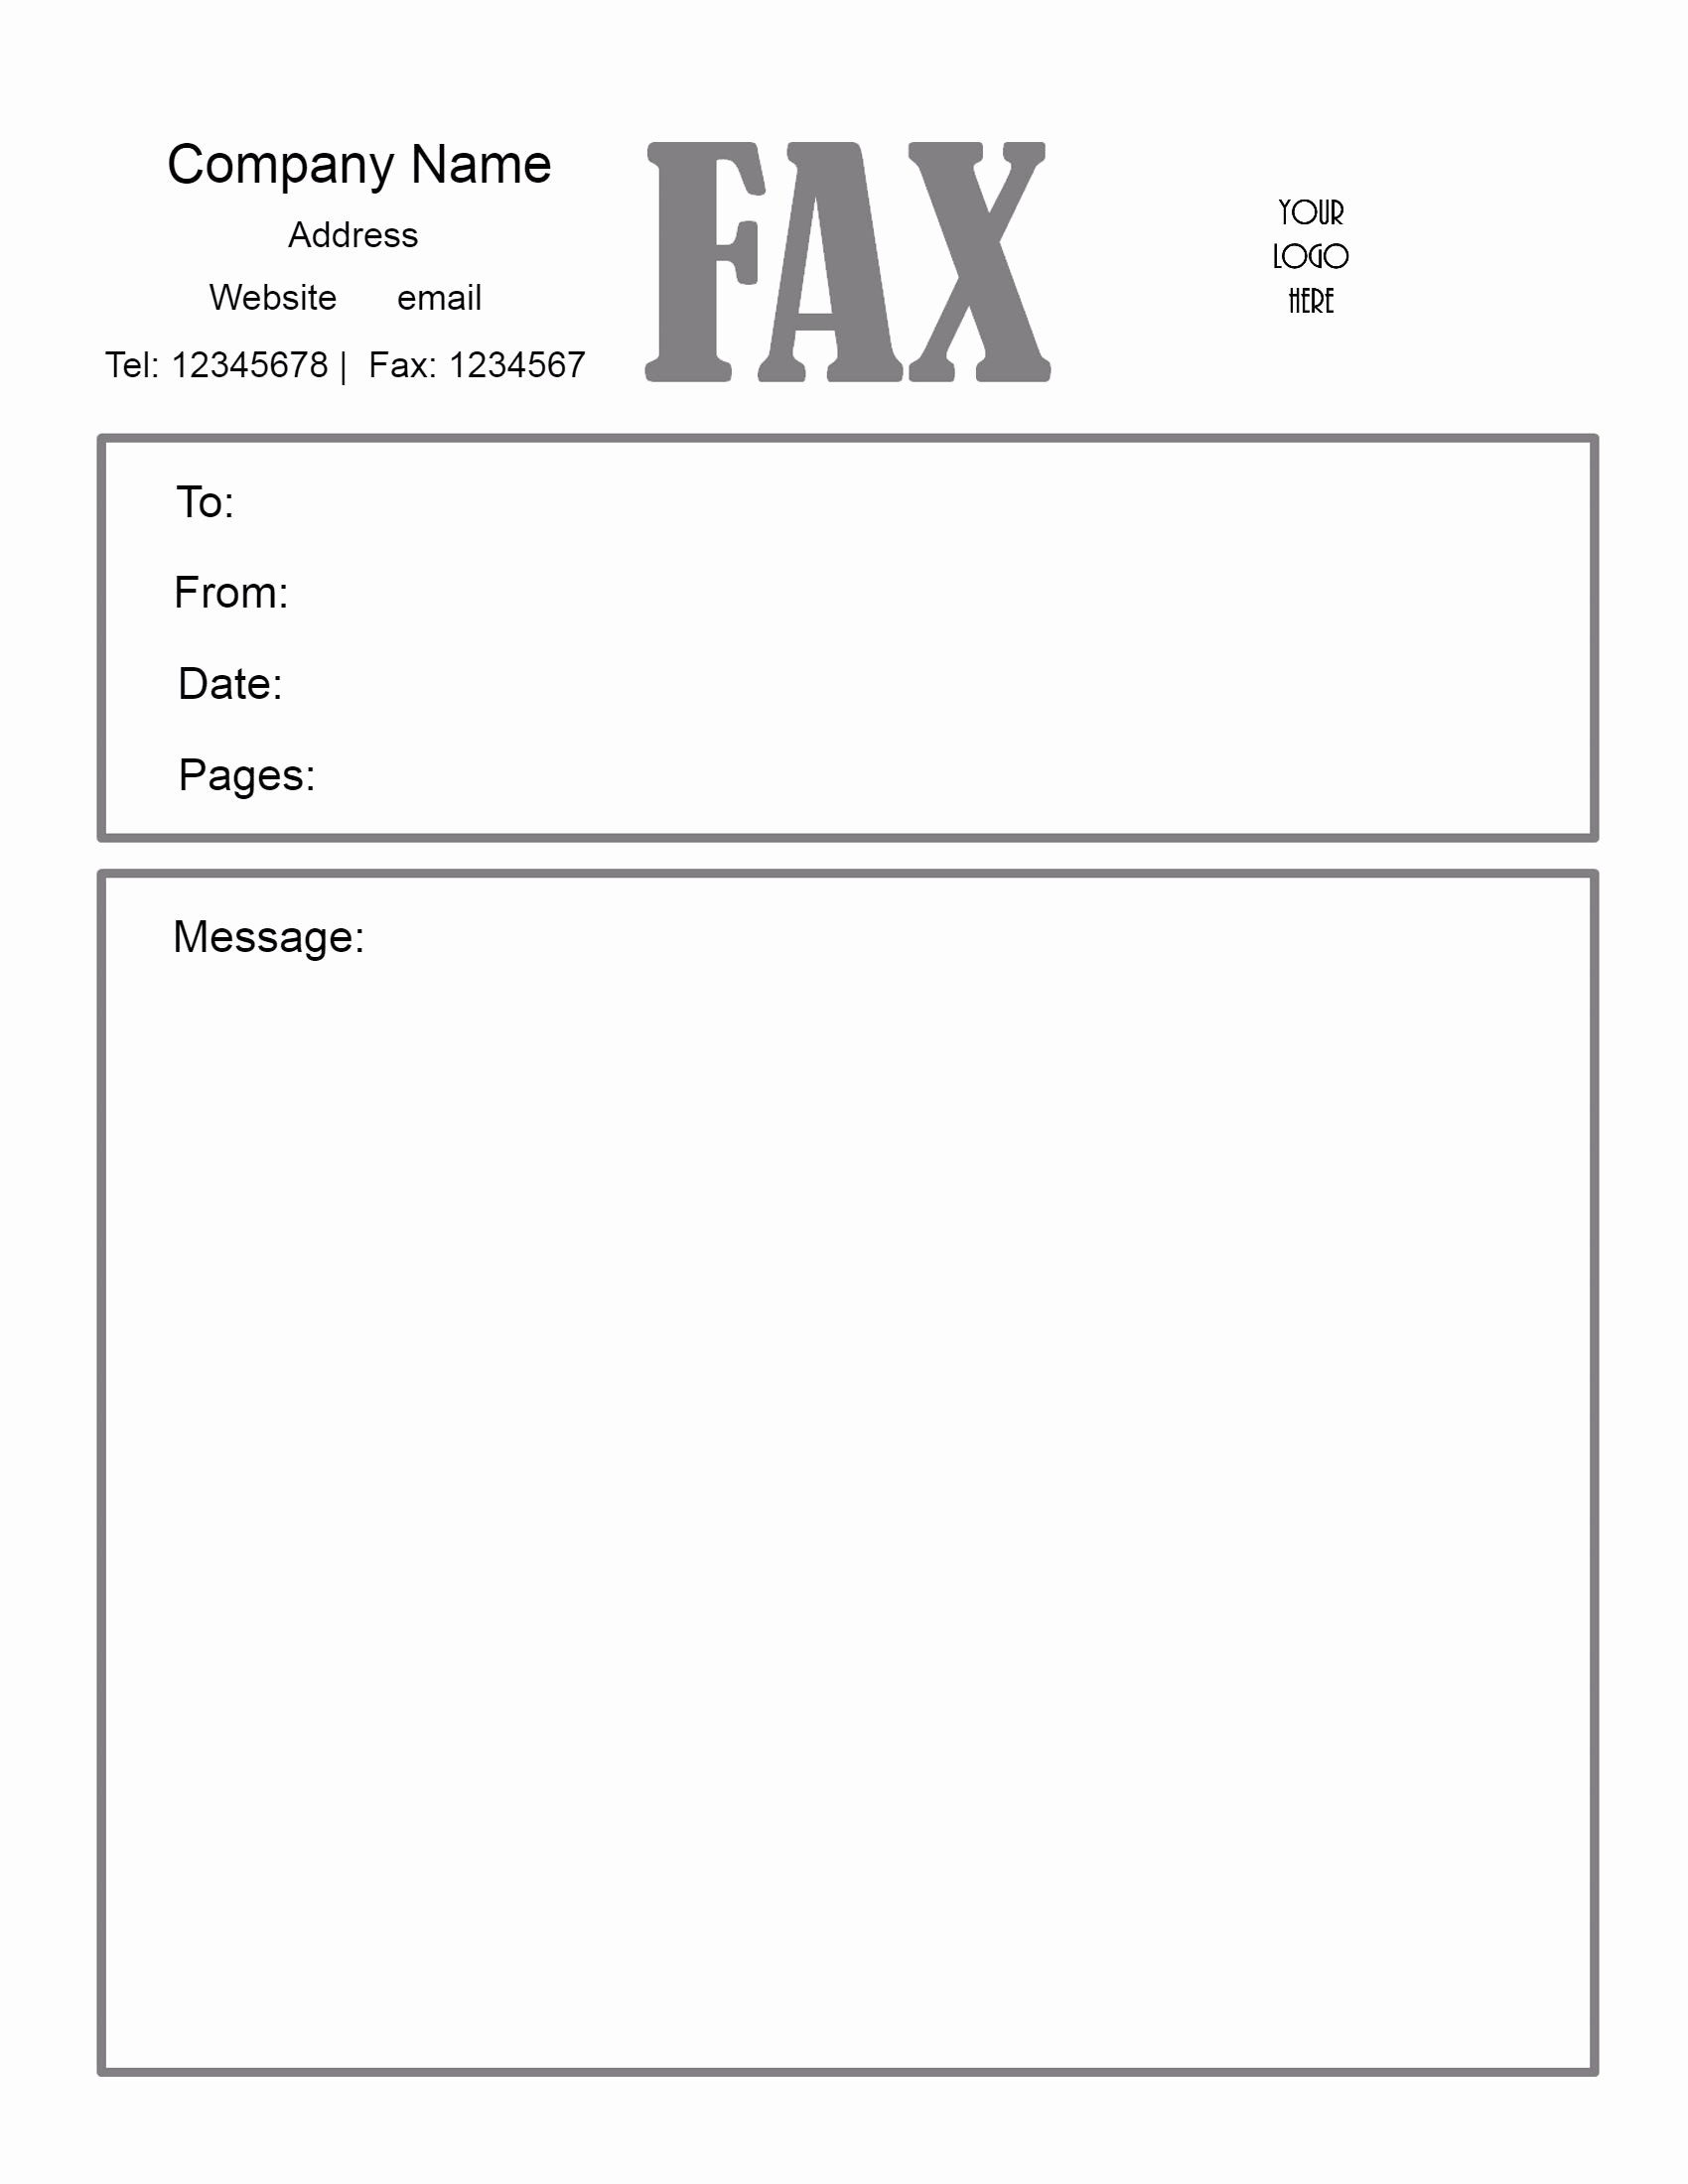 Printable Basic Fax Cover Sheet Lovely Fax Cover Sheet – Download Fax Cover Sheet Fax Cover